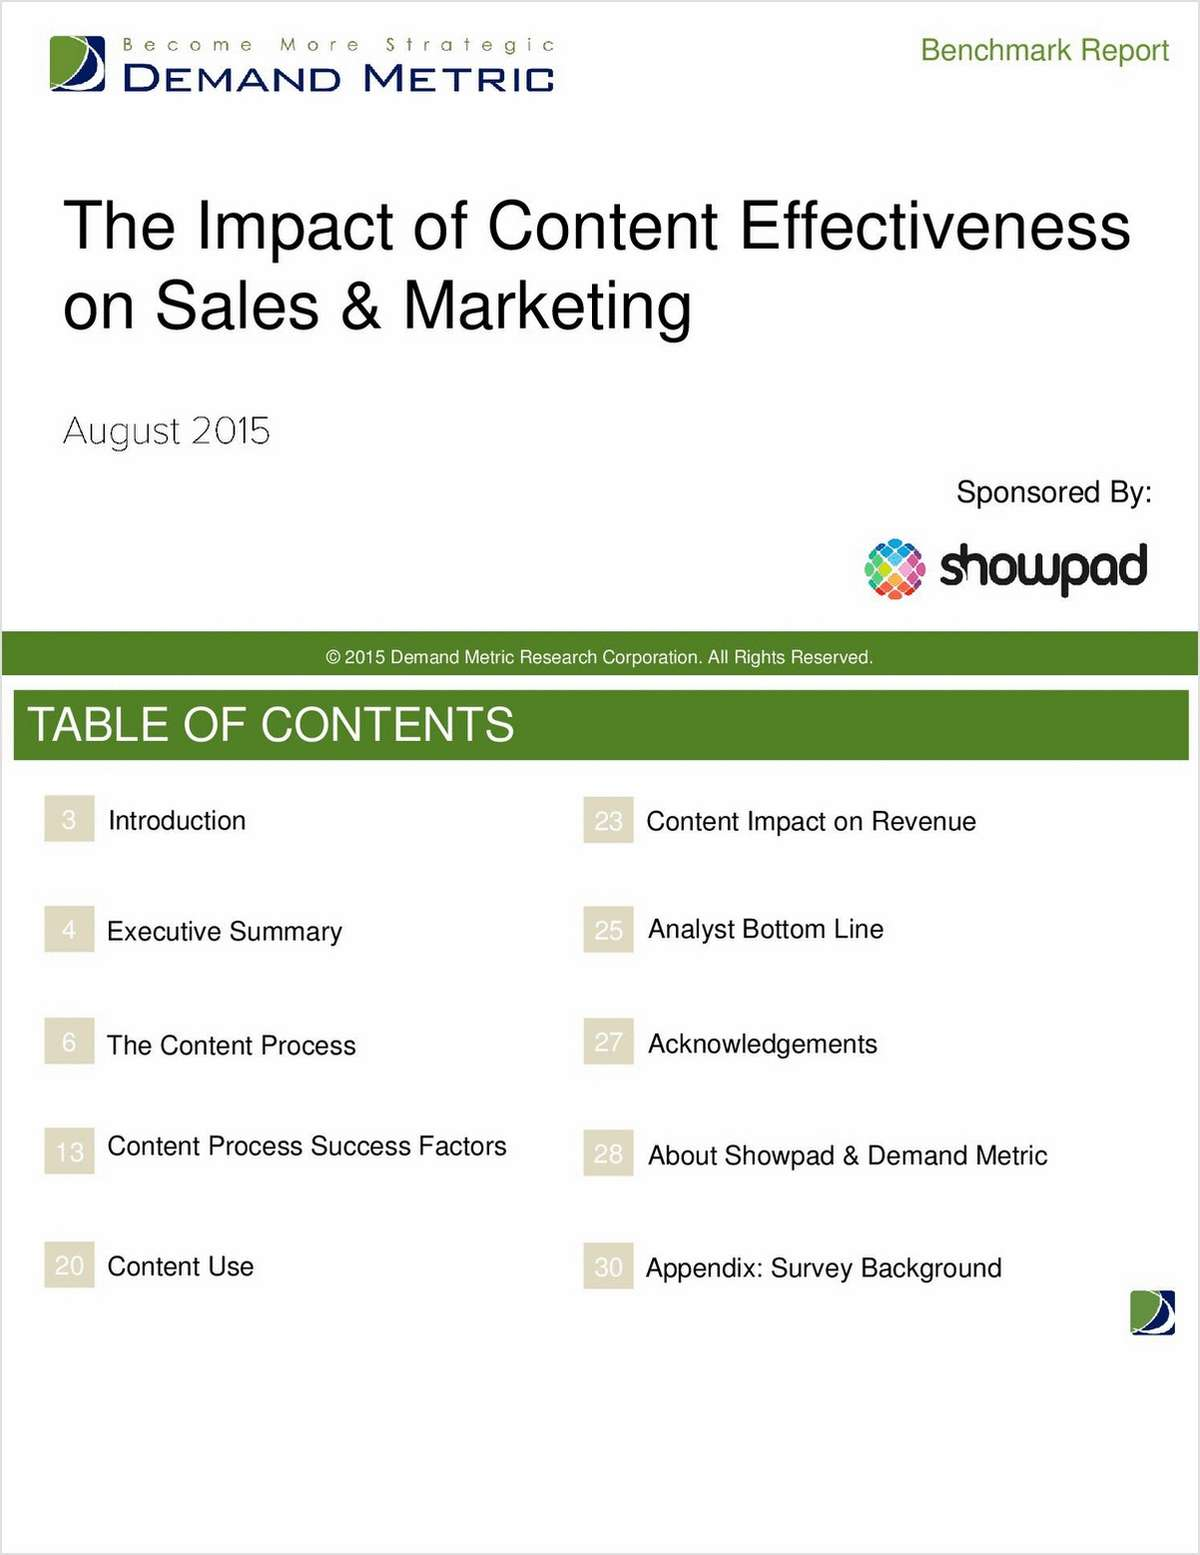 The Impact of Content Effectiveness on Sales and Marketing